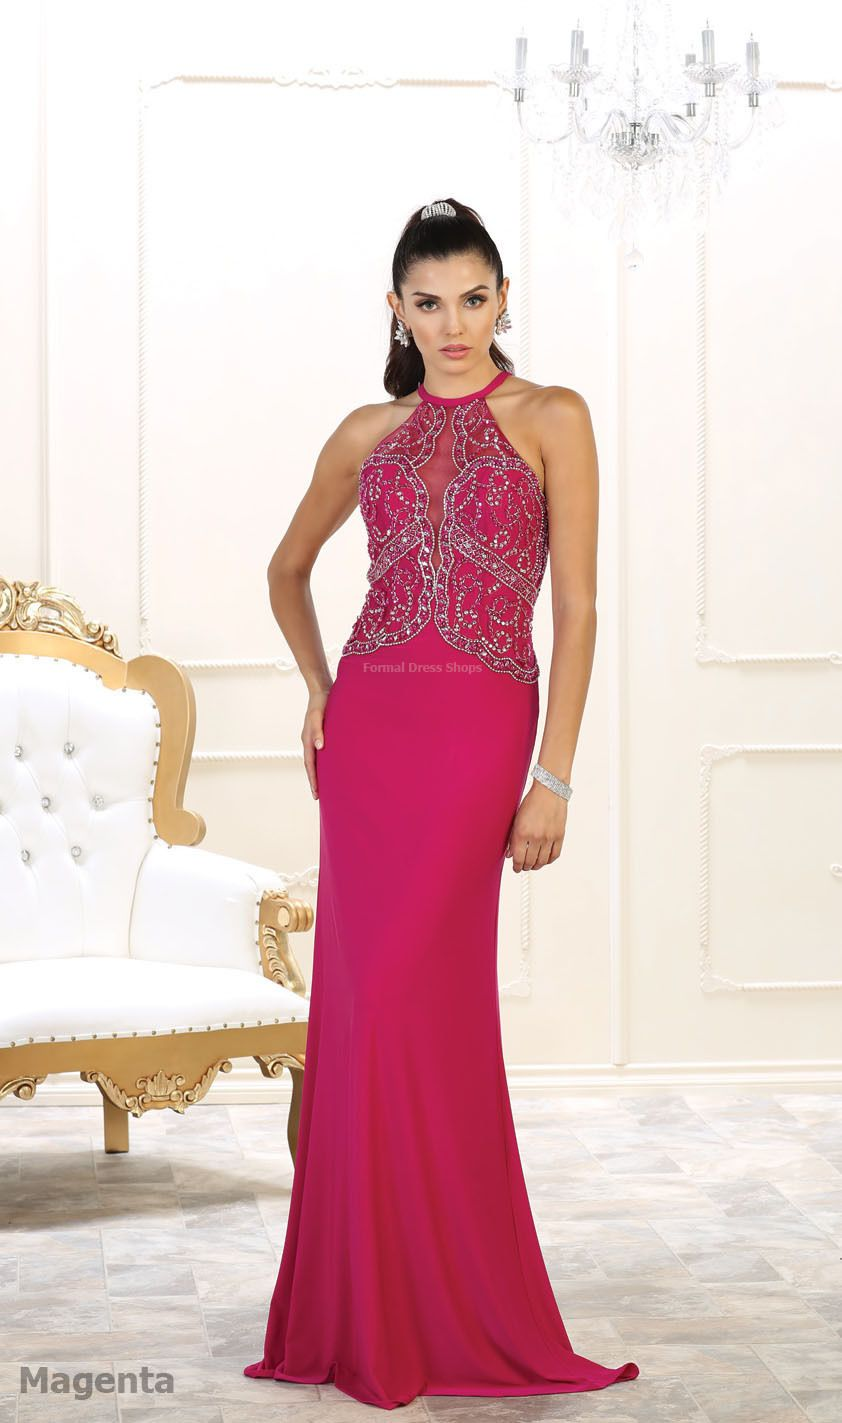 Cool great prom evening formal gown special occasion dress sweet